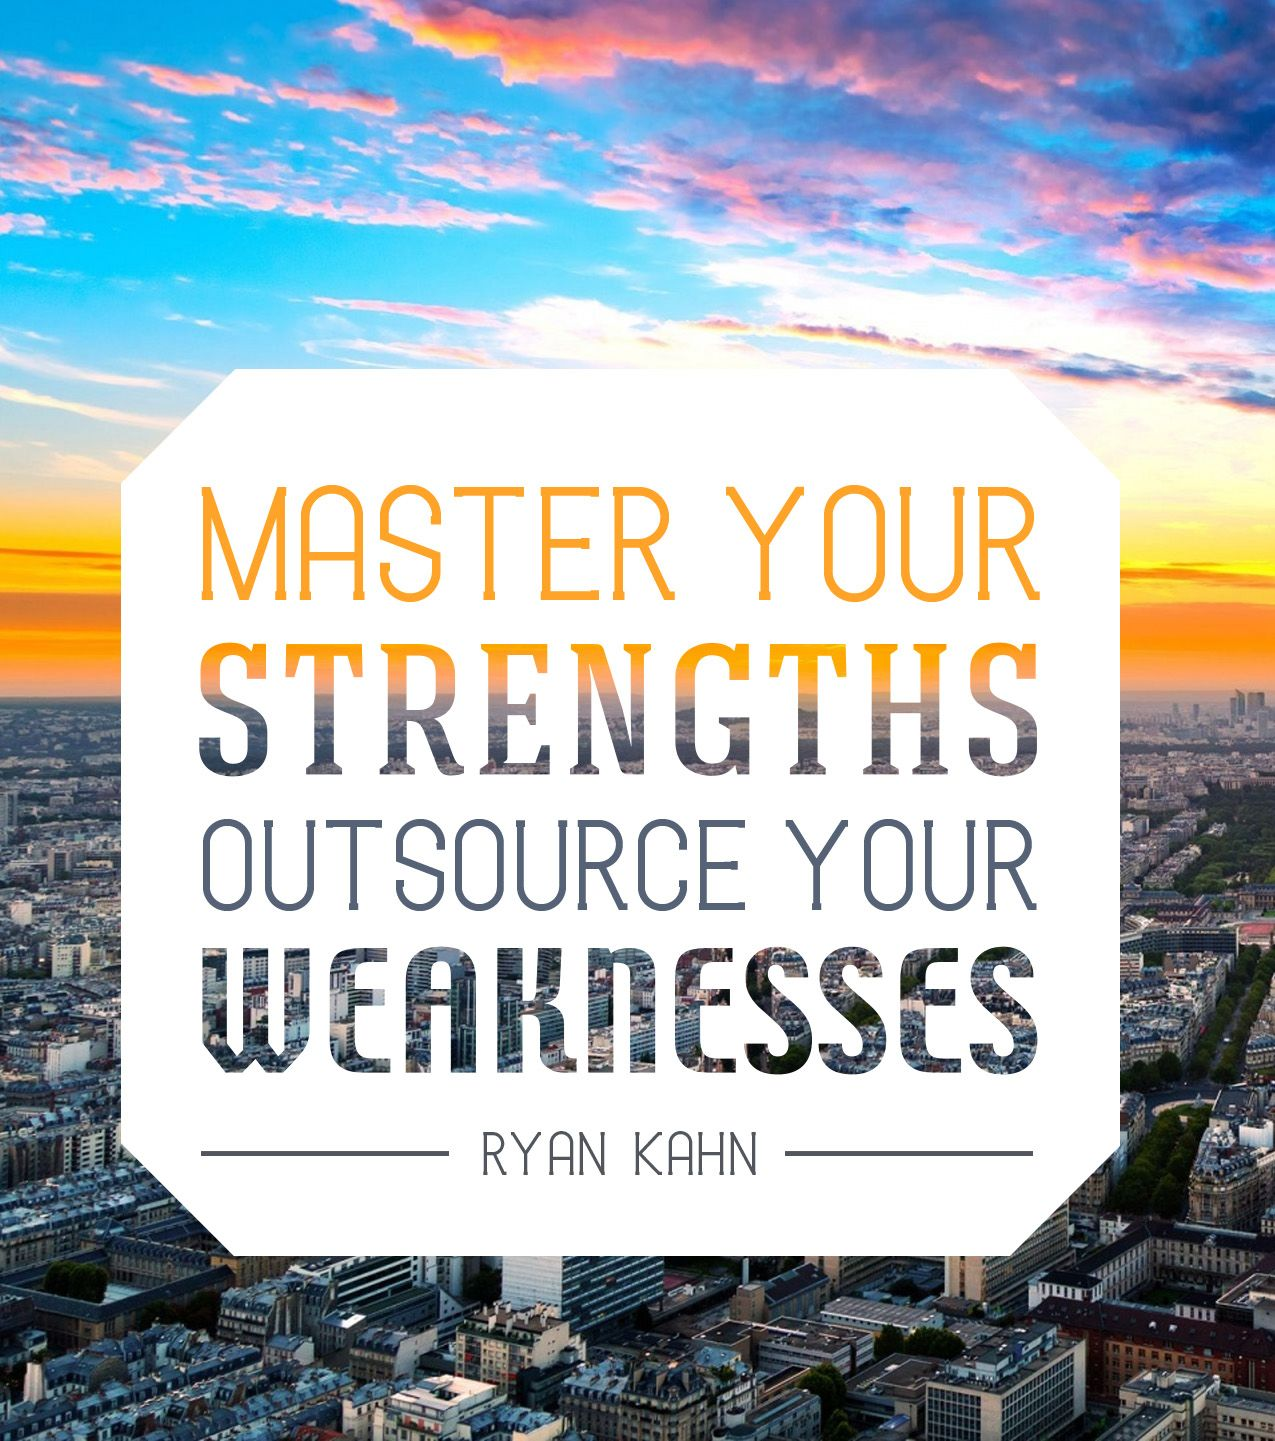 master your strengths outsource your weaknesses motivational master your strengths outsource your weaknesses motivational job work career quote from